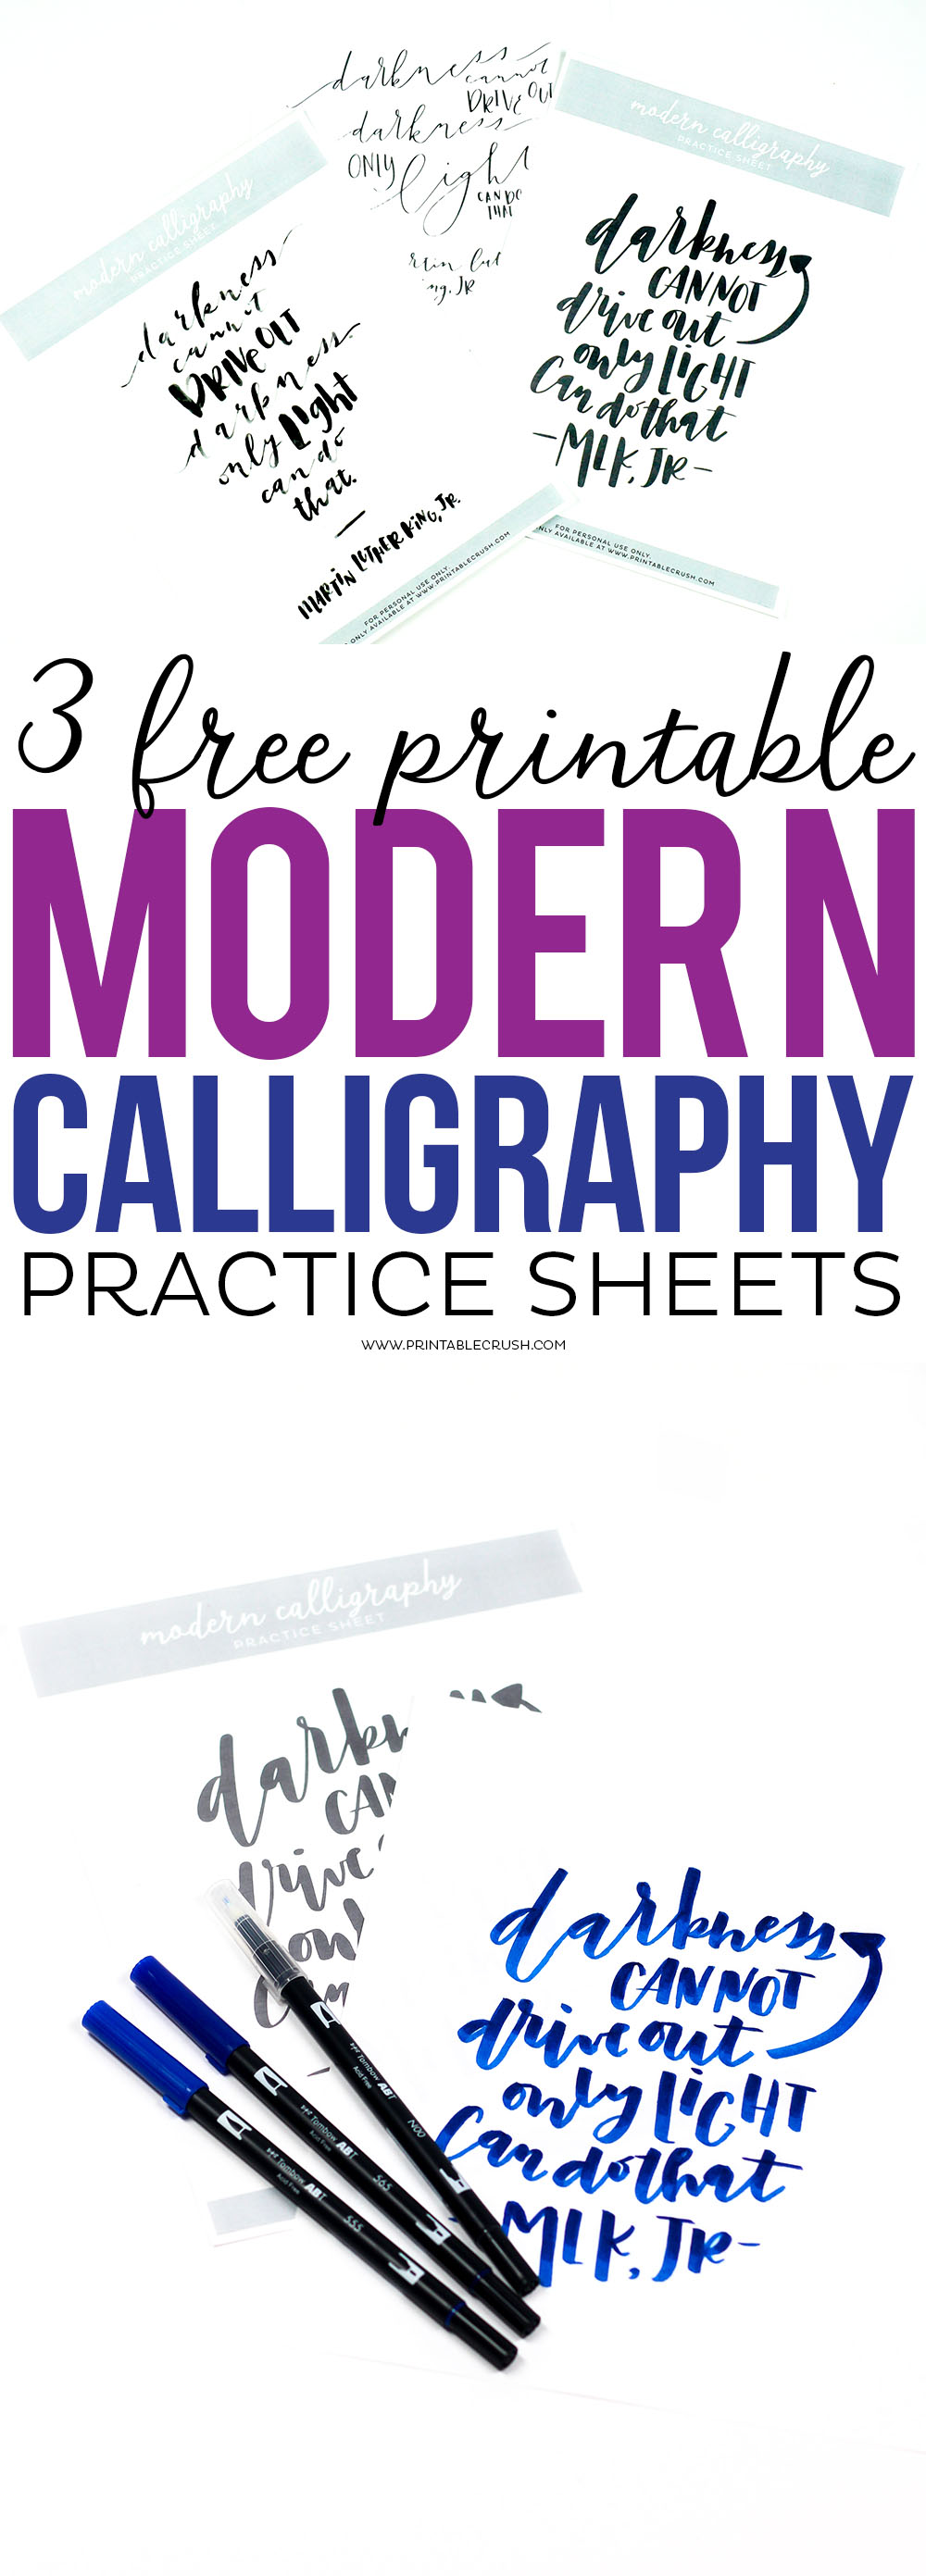 photo regarding Calligraphy Practice Sheets Printable Free known as 3 No cost Printable Impressive Calligraphy Prepare Sheets